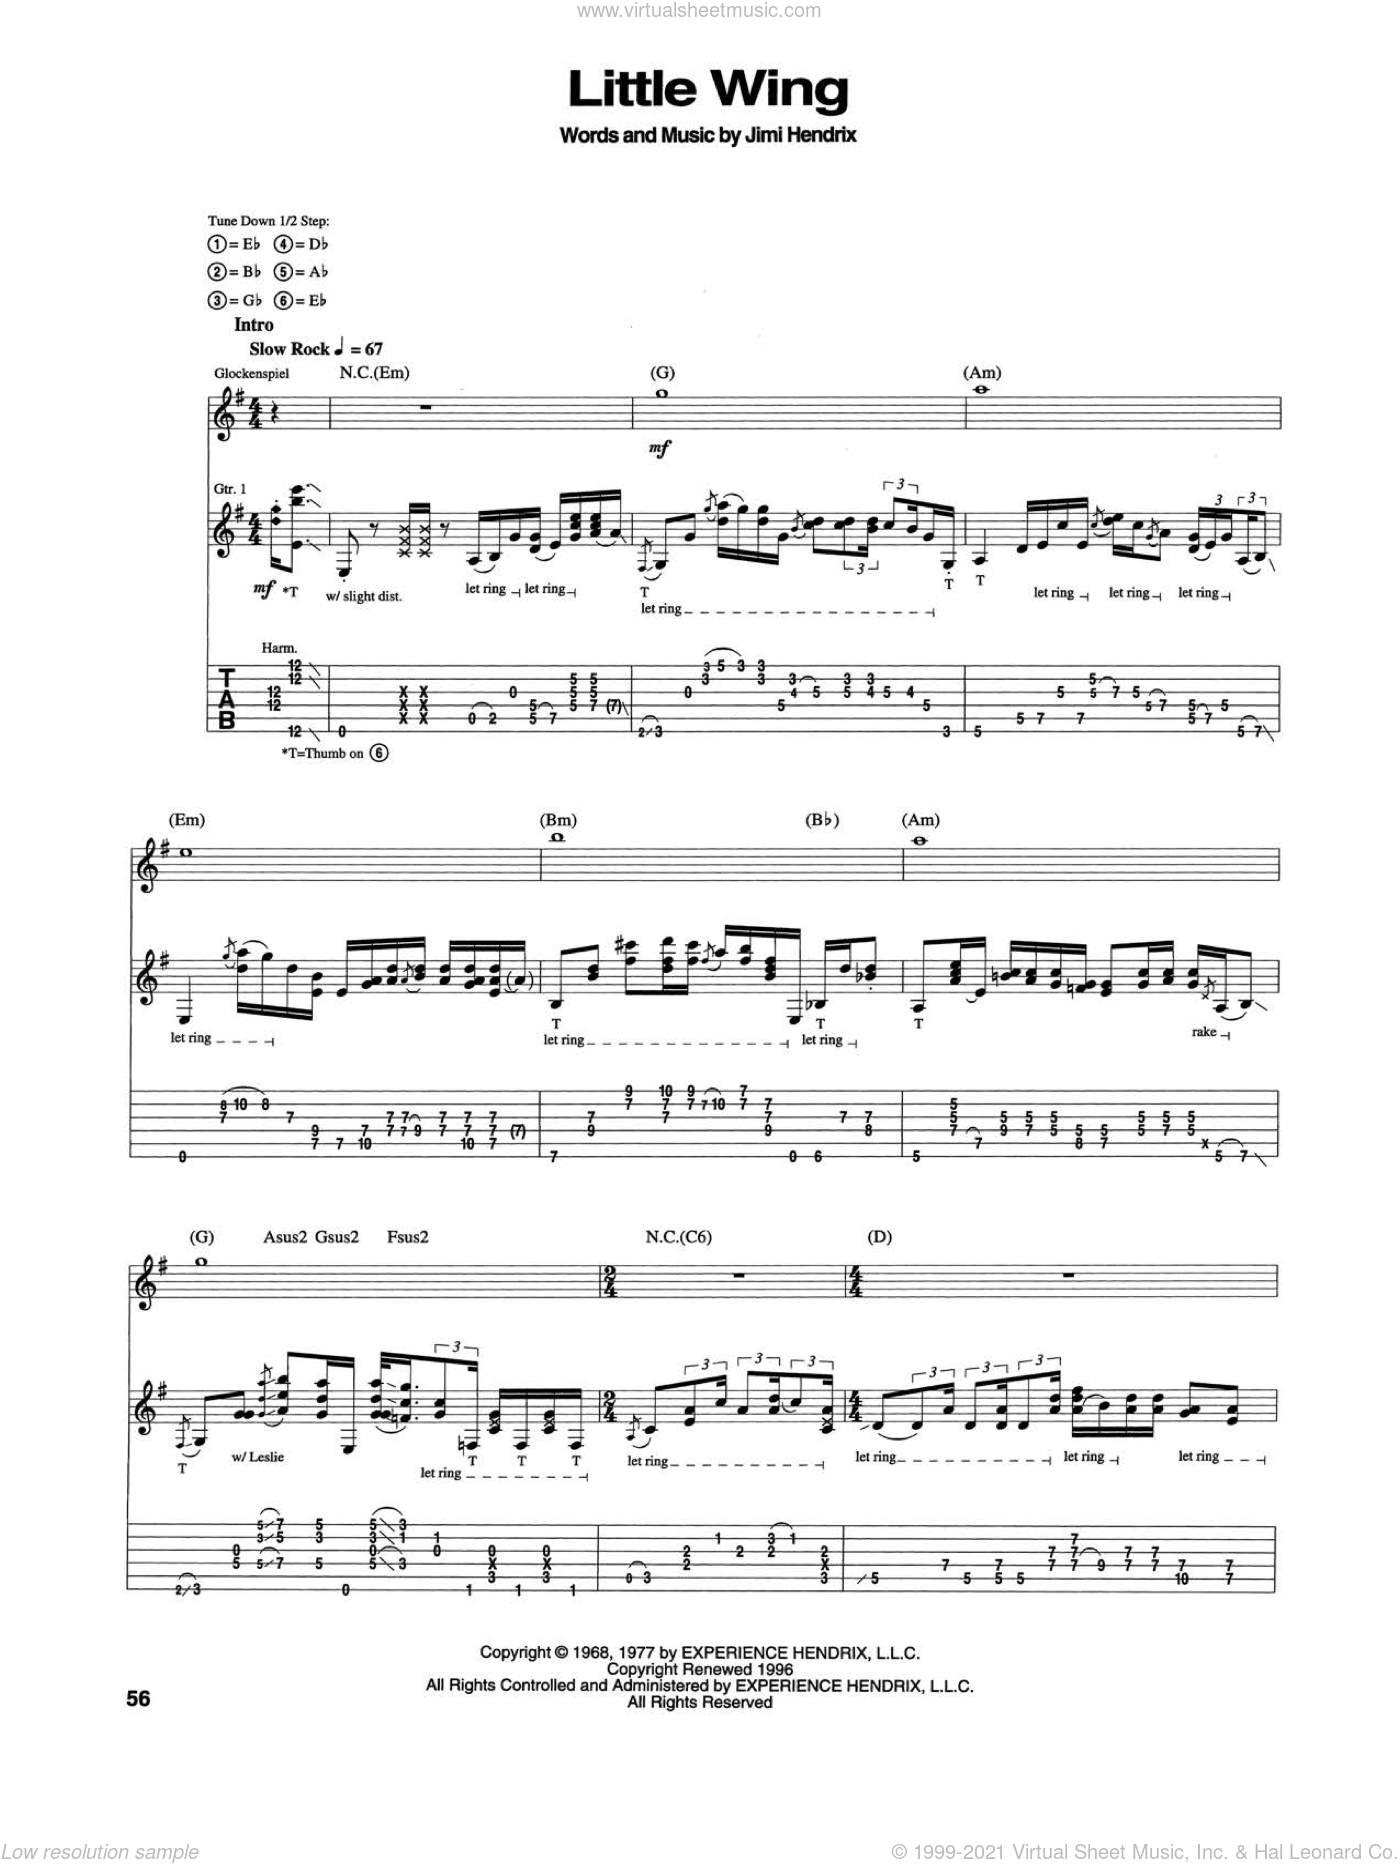 Little Wing sheet music for guitar (tablature) by Jimi Hendrix, intermediate skill level